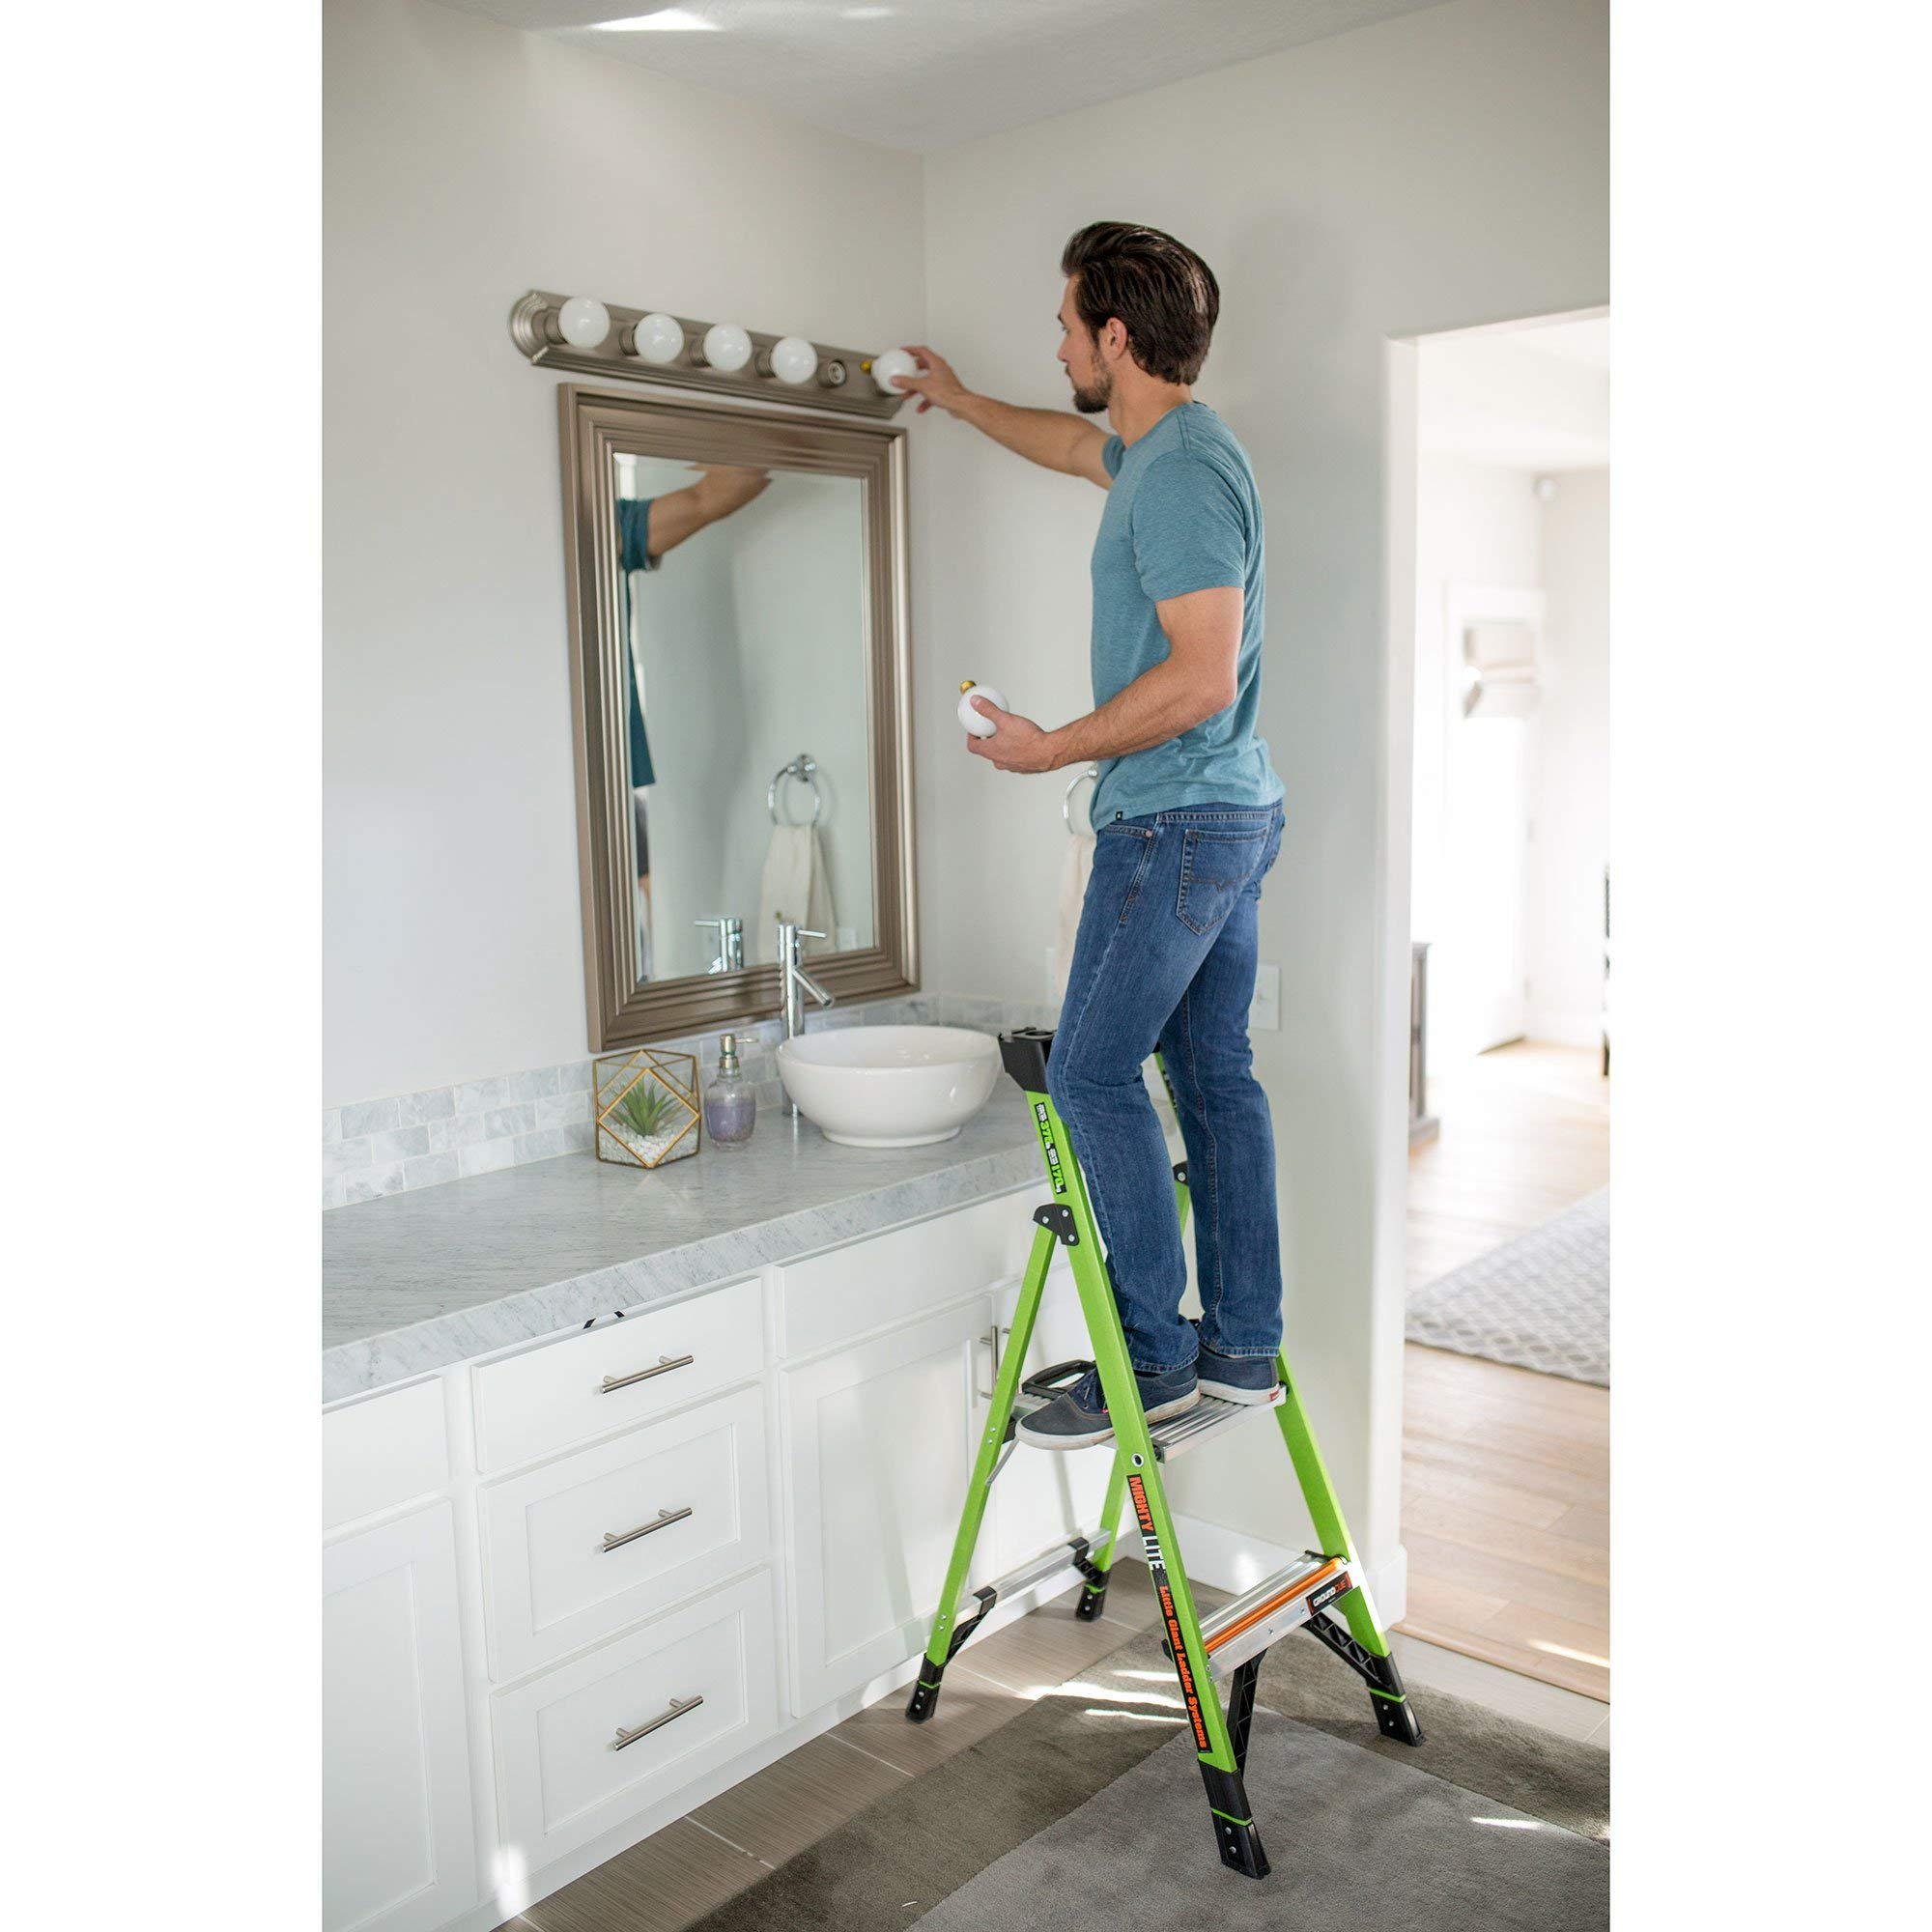 Little Giant Ladder Systems 15364-001 Mightylite 4 4, 4' IA 4 Step Ladder by Little Giant Ladder Systems (Image #3)